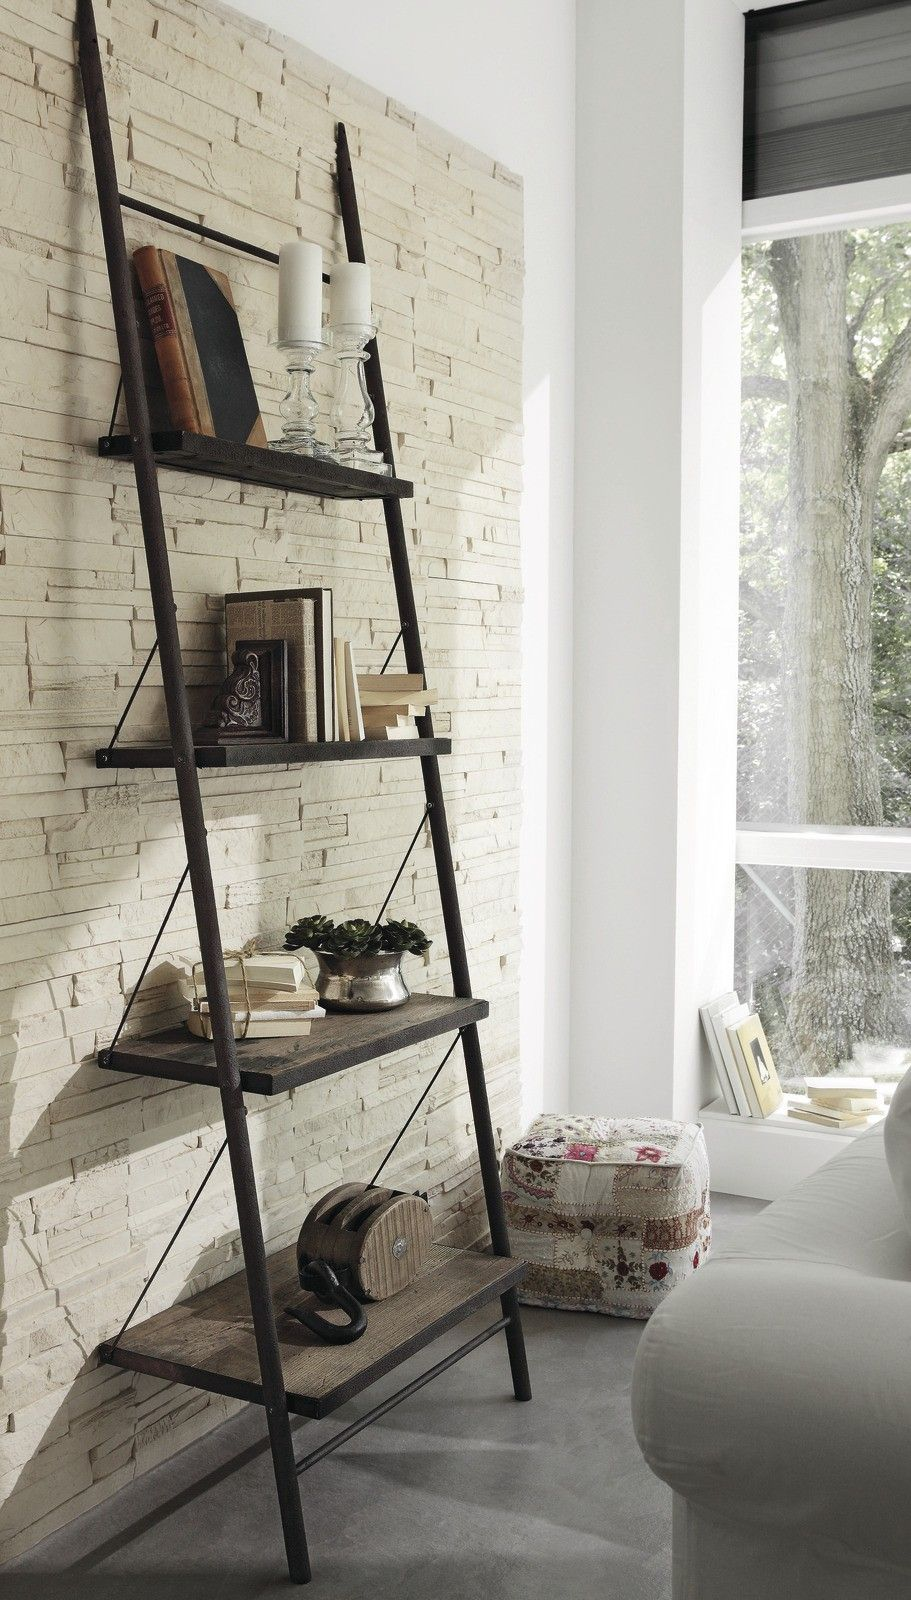 Ladder Shelf With Chains House Pinterest Shelves And